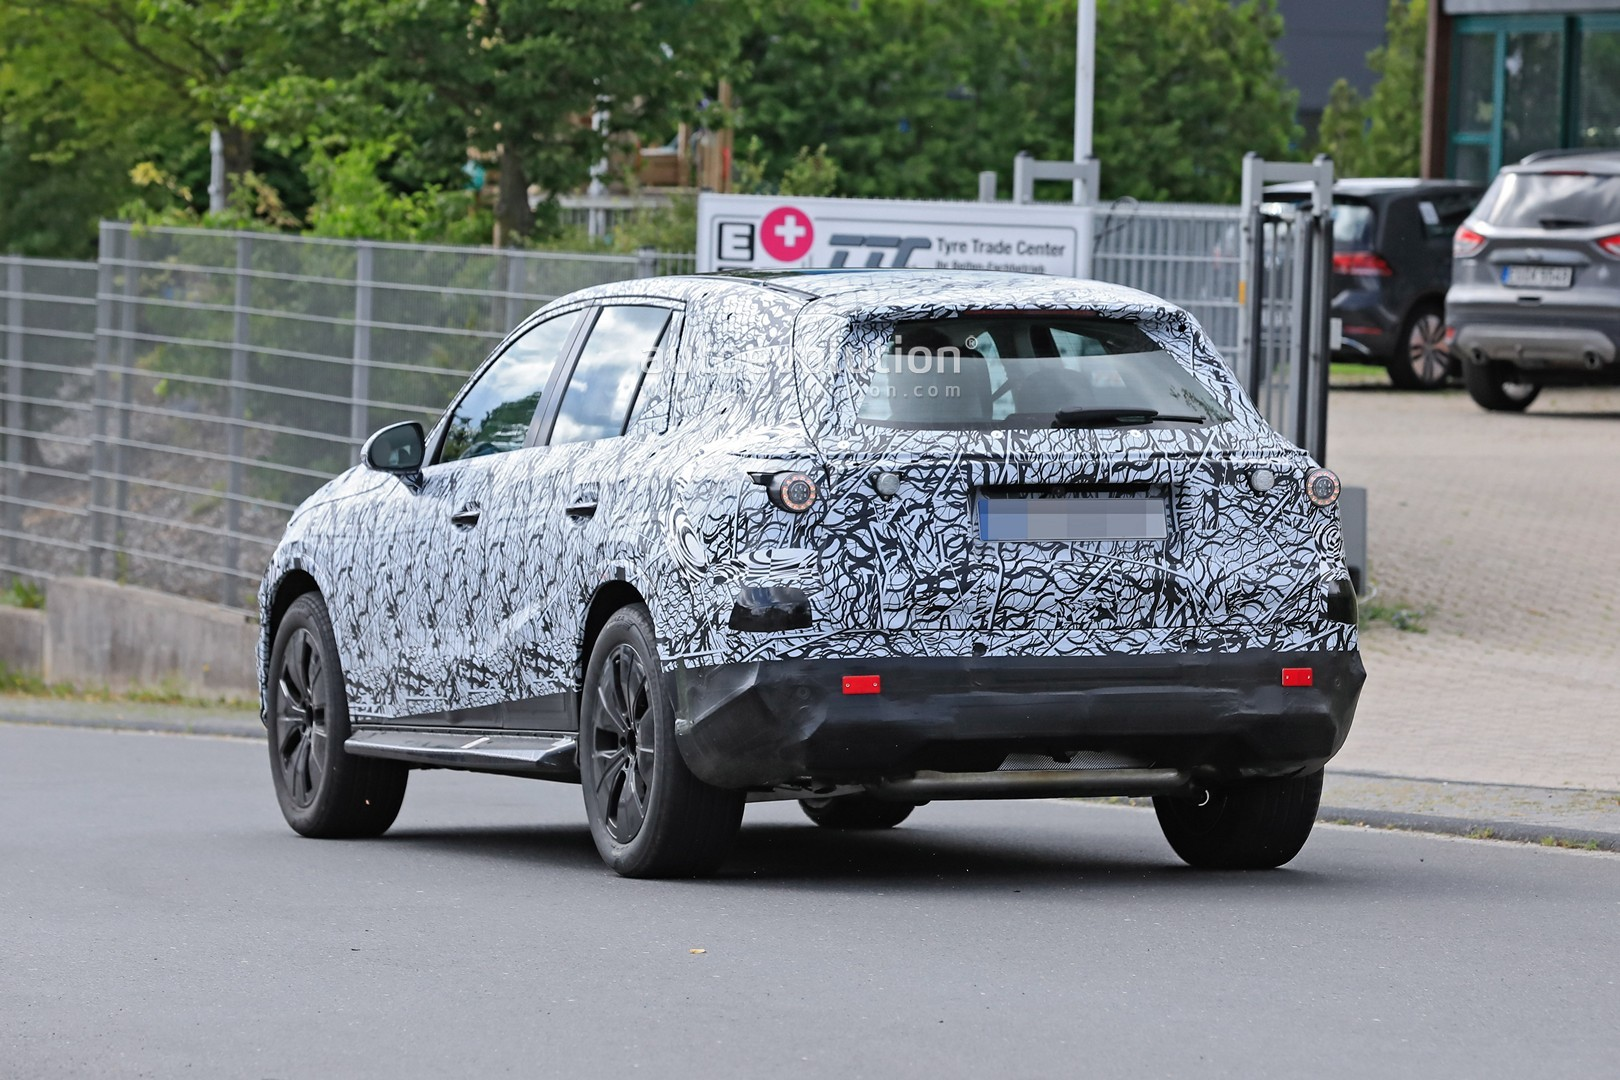 2021 - [Mercedes-Benz] GLC II - Page 2 All-new-2022-mercedes-glc-class-spied-getting-to-be-the-king-of-cuvs_19